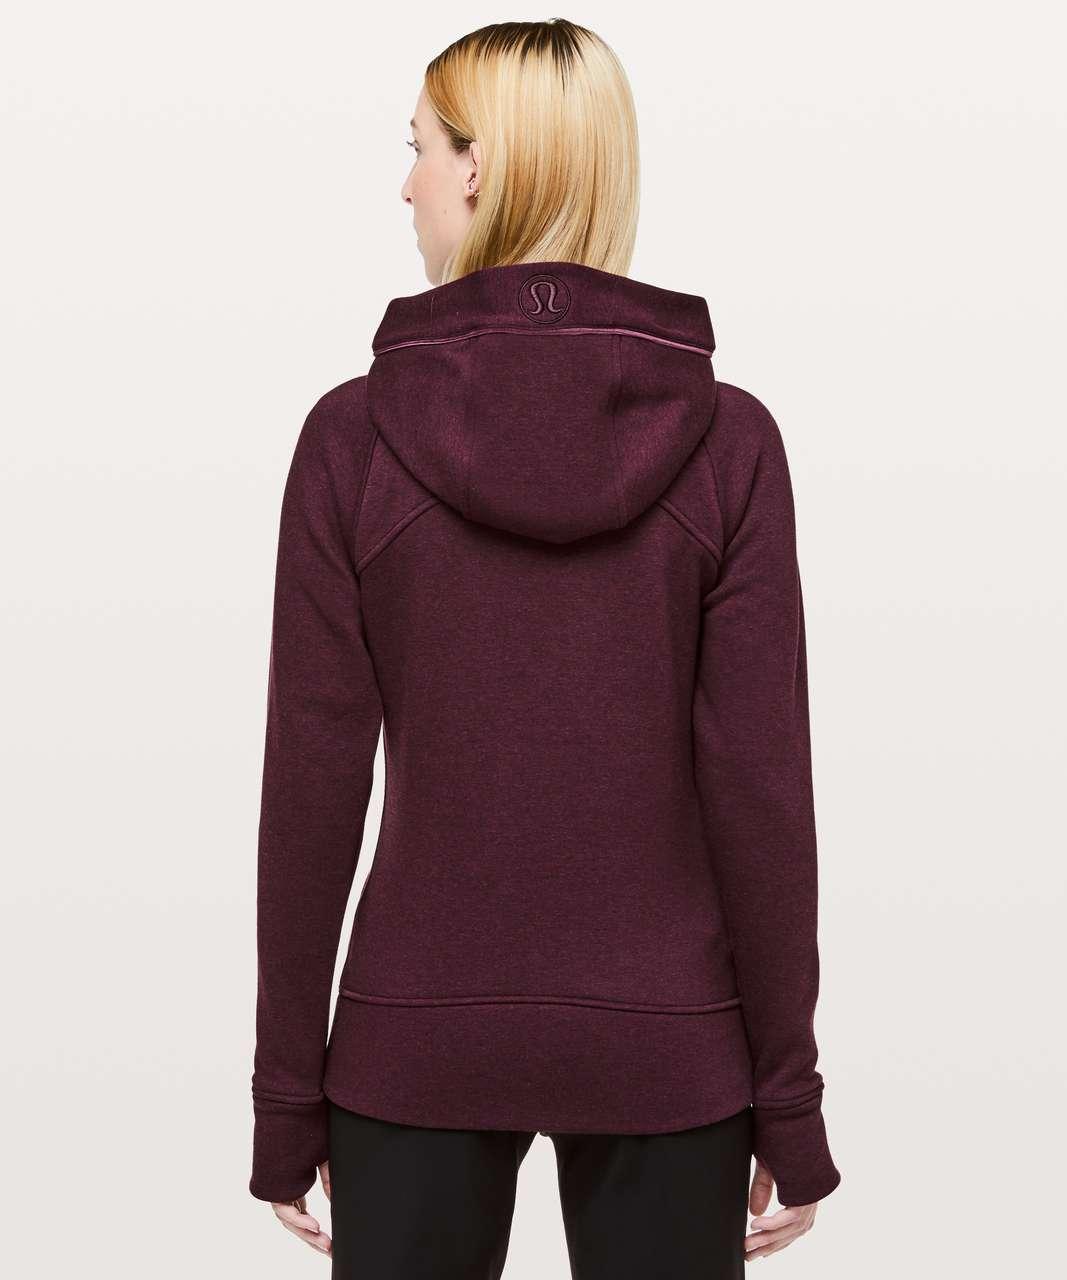 Lululemon Scuba Hoodie *Plush - Heathered Dark Adobe / Dark Adobe